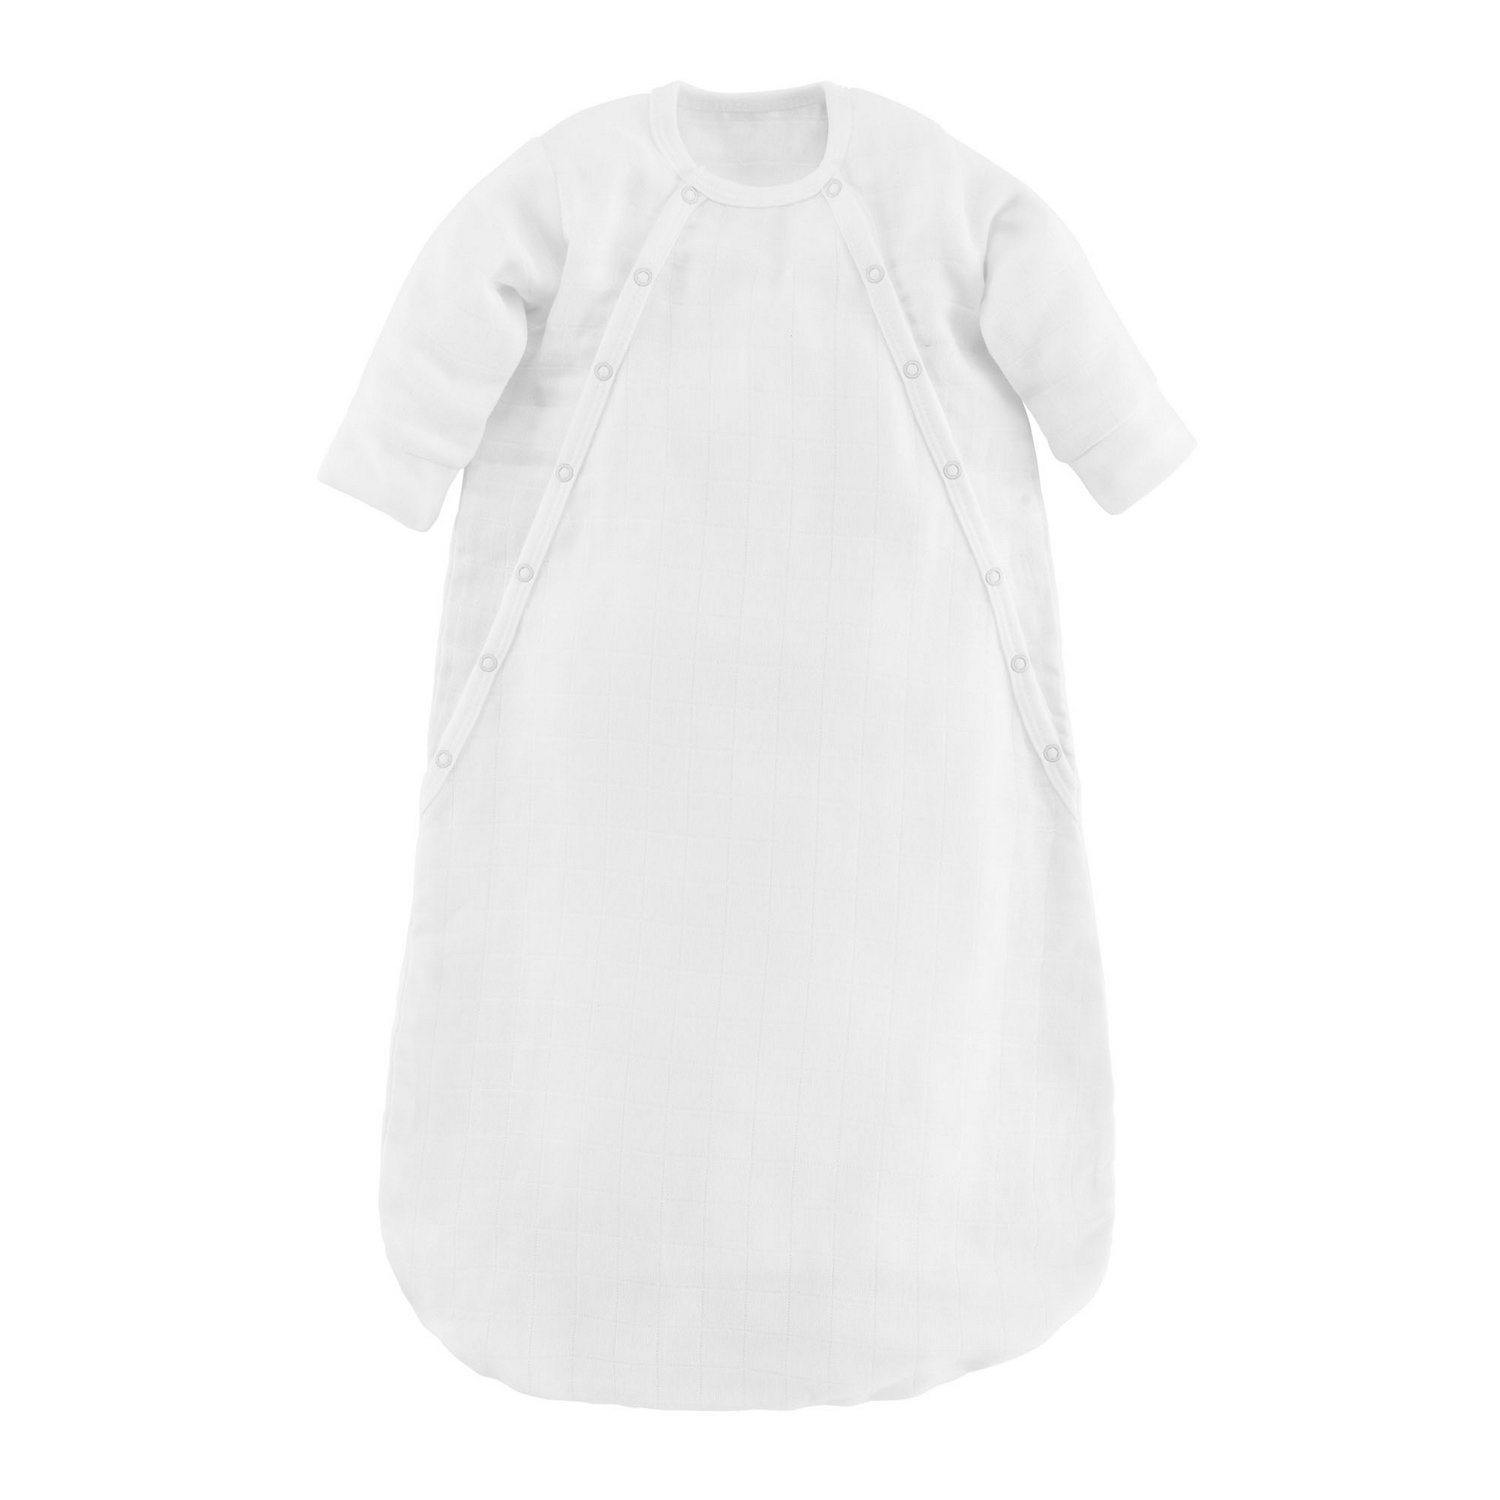 Under the Nile Baby Muslin Bunting Organic Cotton (White, 0-3 Months)